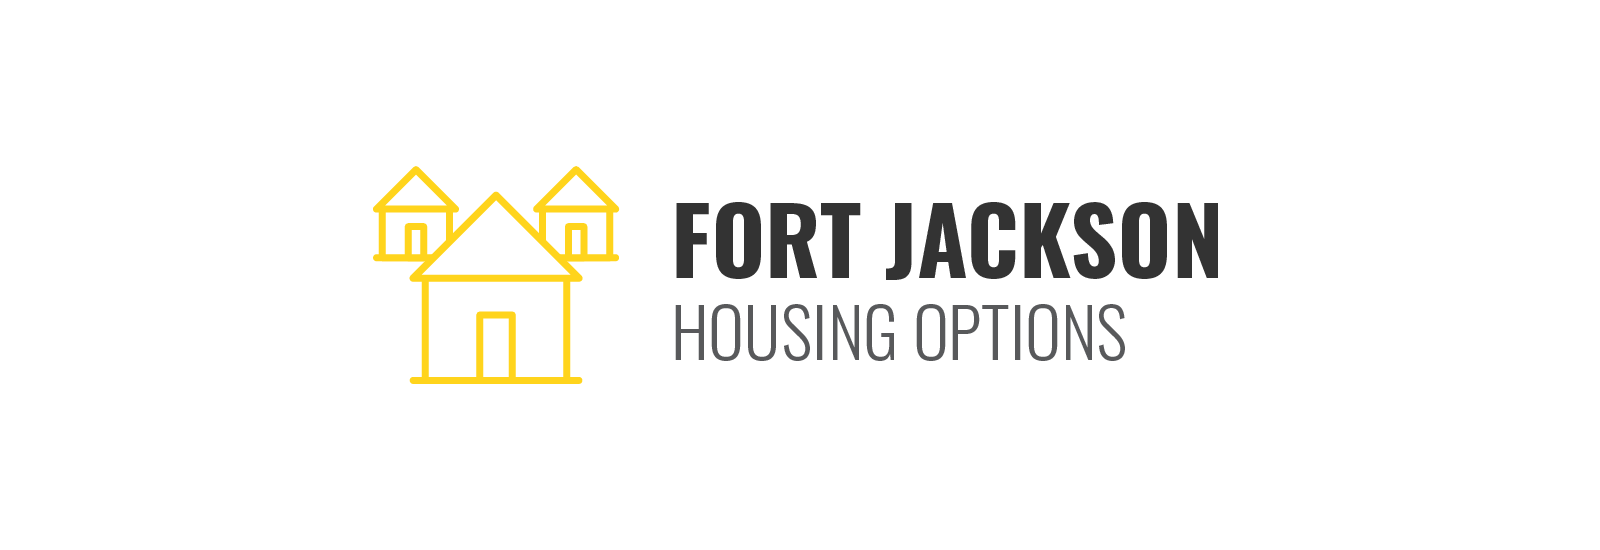 Fort Jackson Housing Options